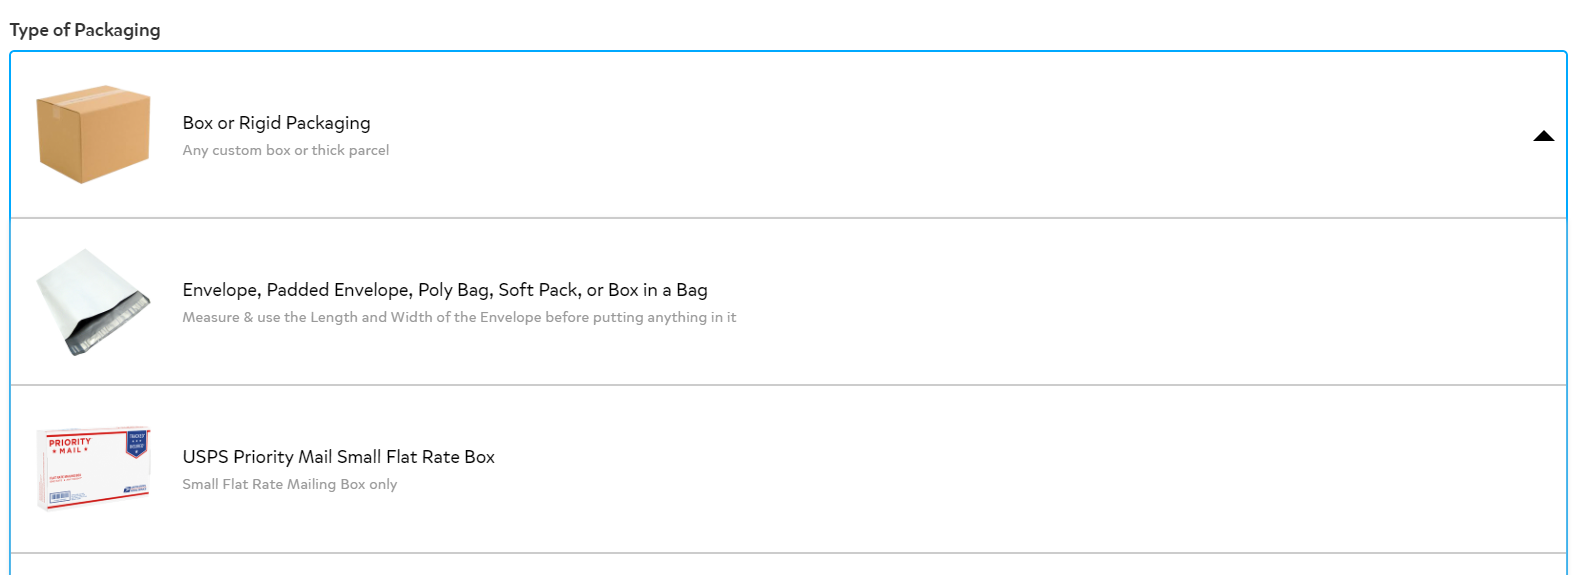 Select the type of packaging page